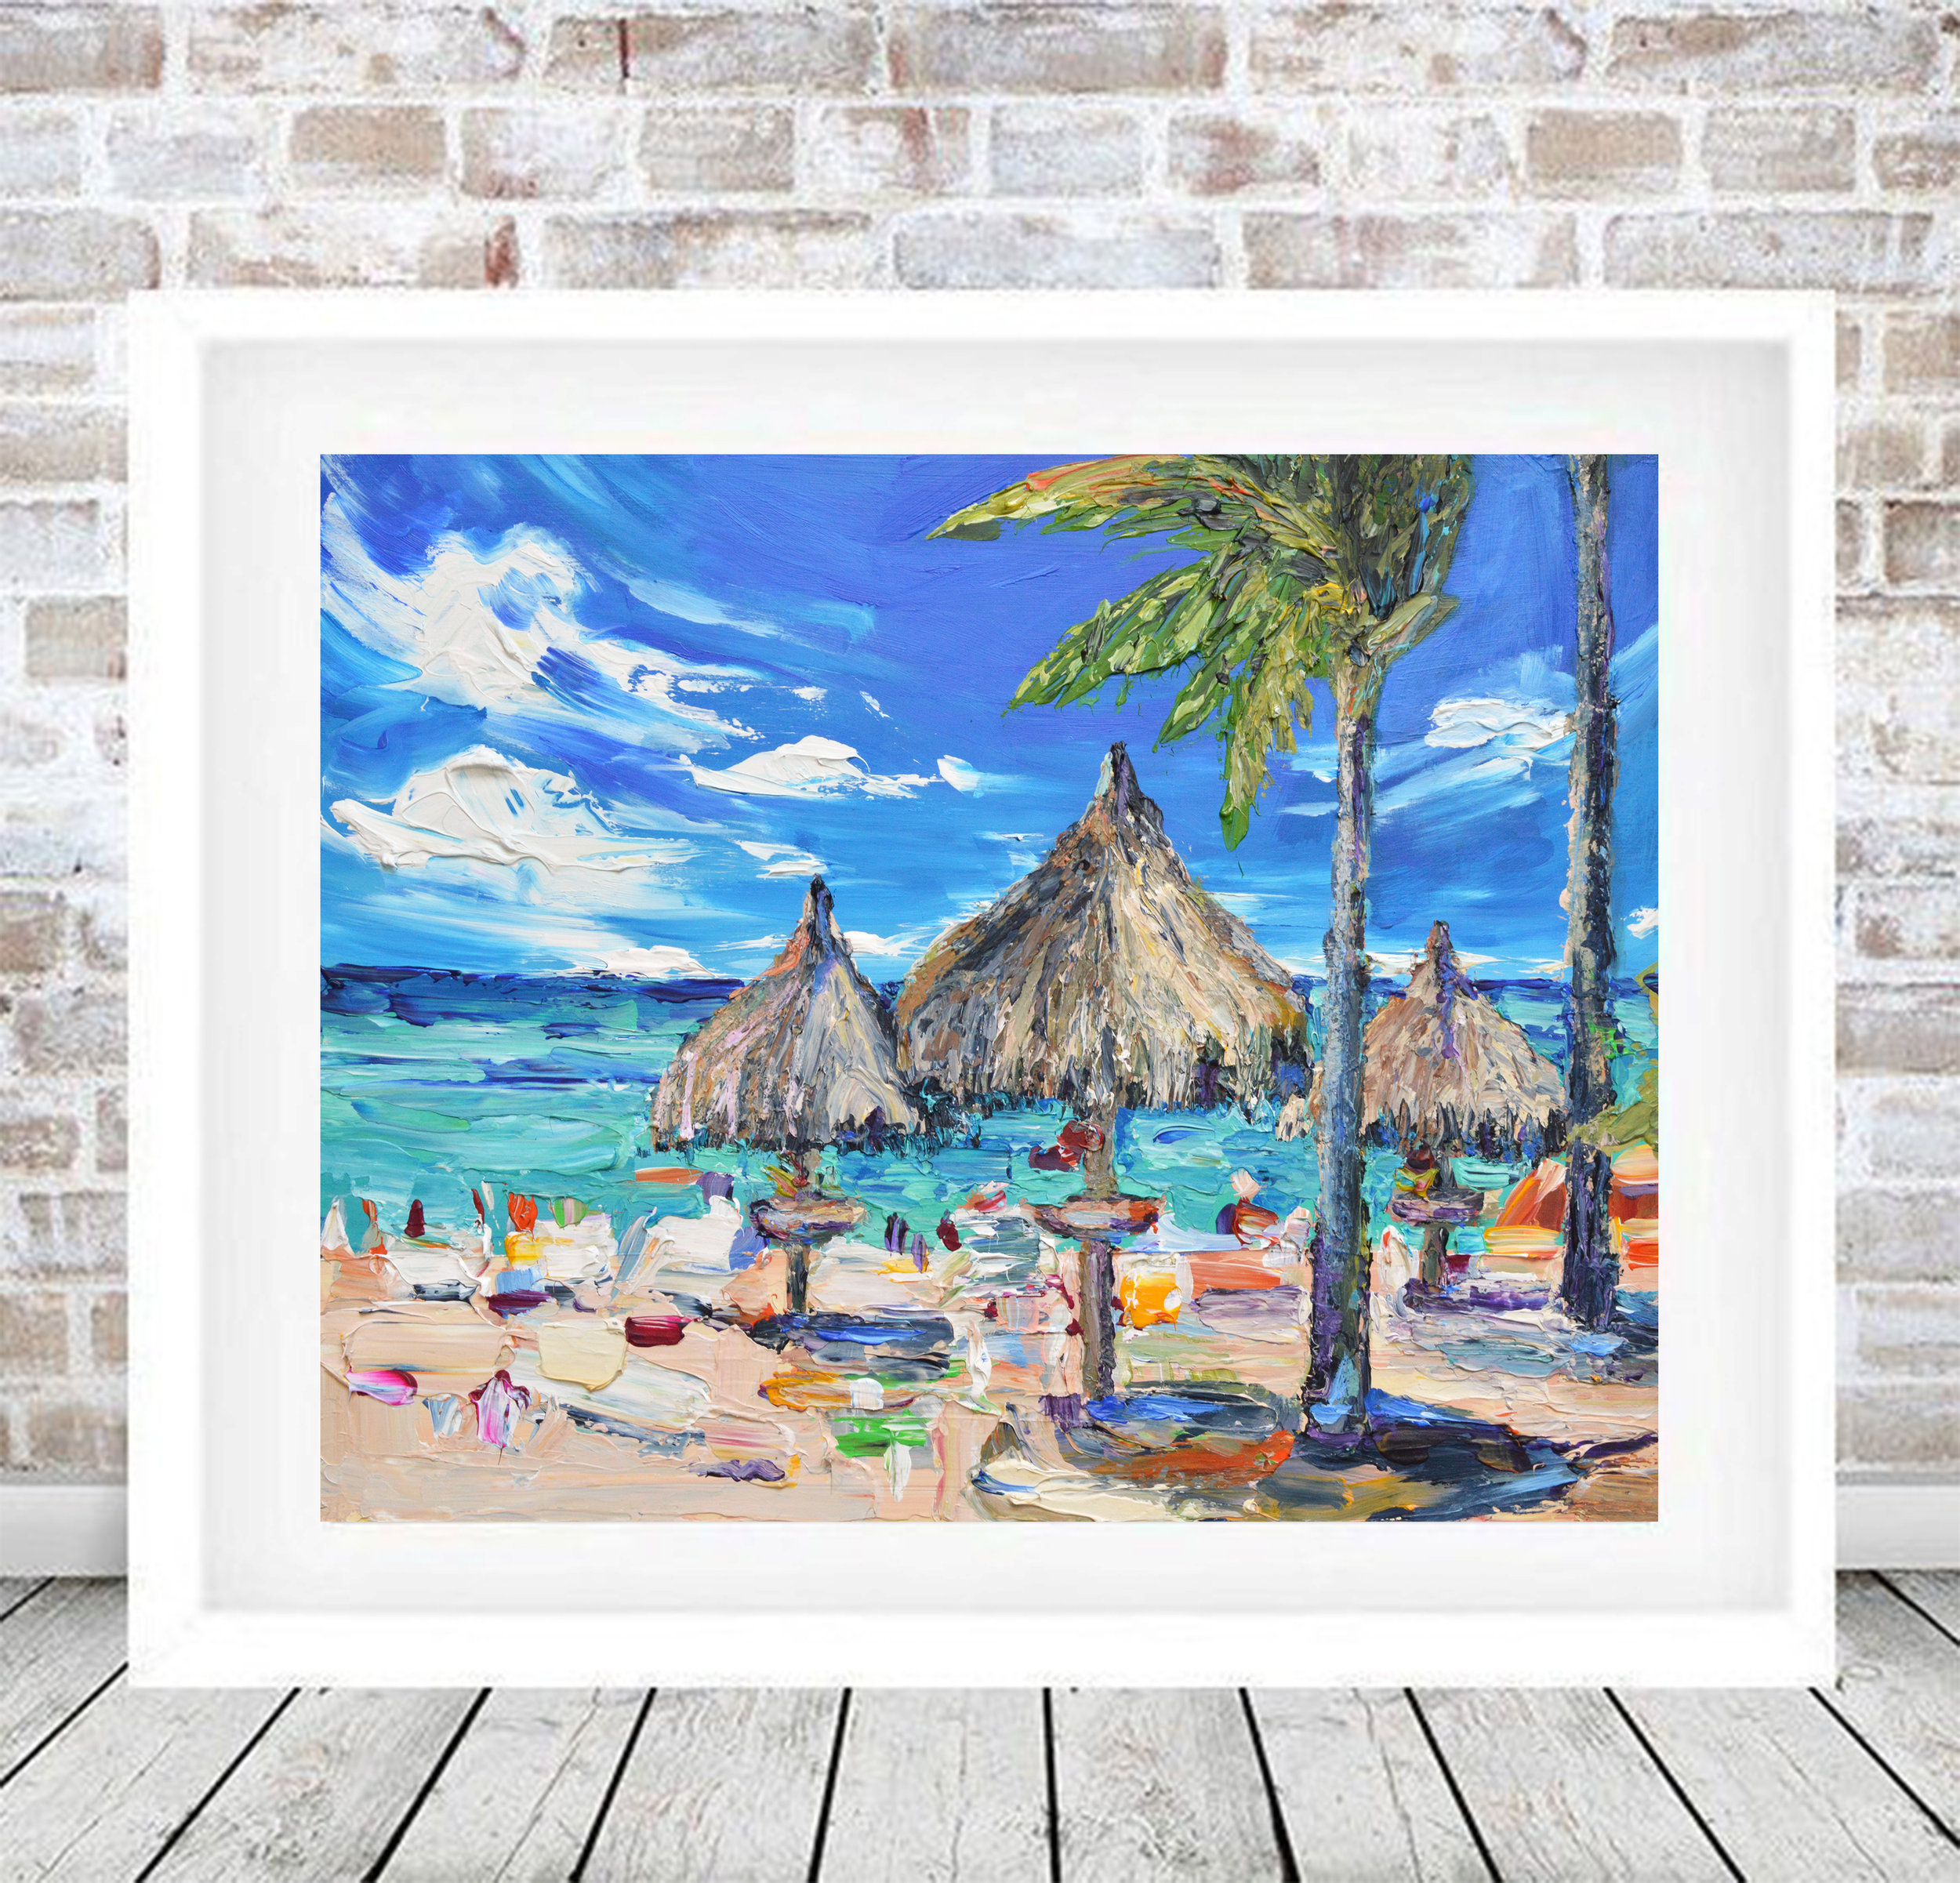 PRINTS - Selected Paradise works of art created into prints with high quality inks on archival paper.